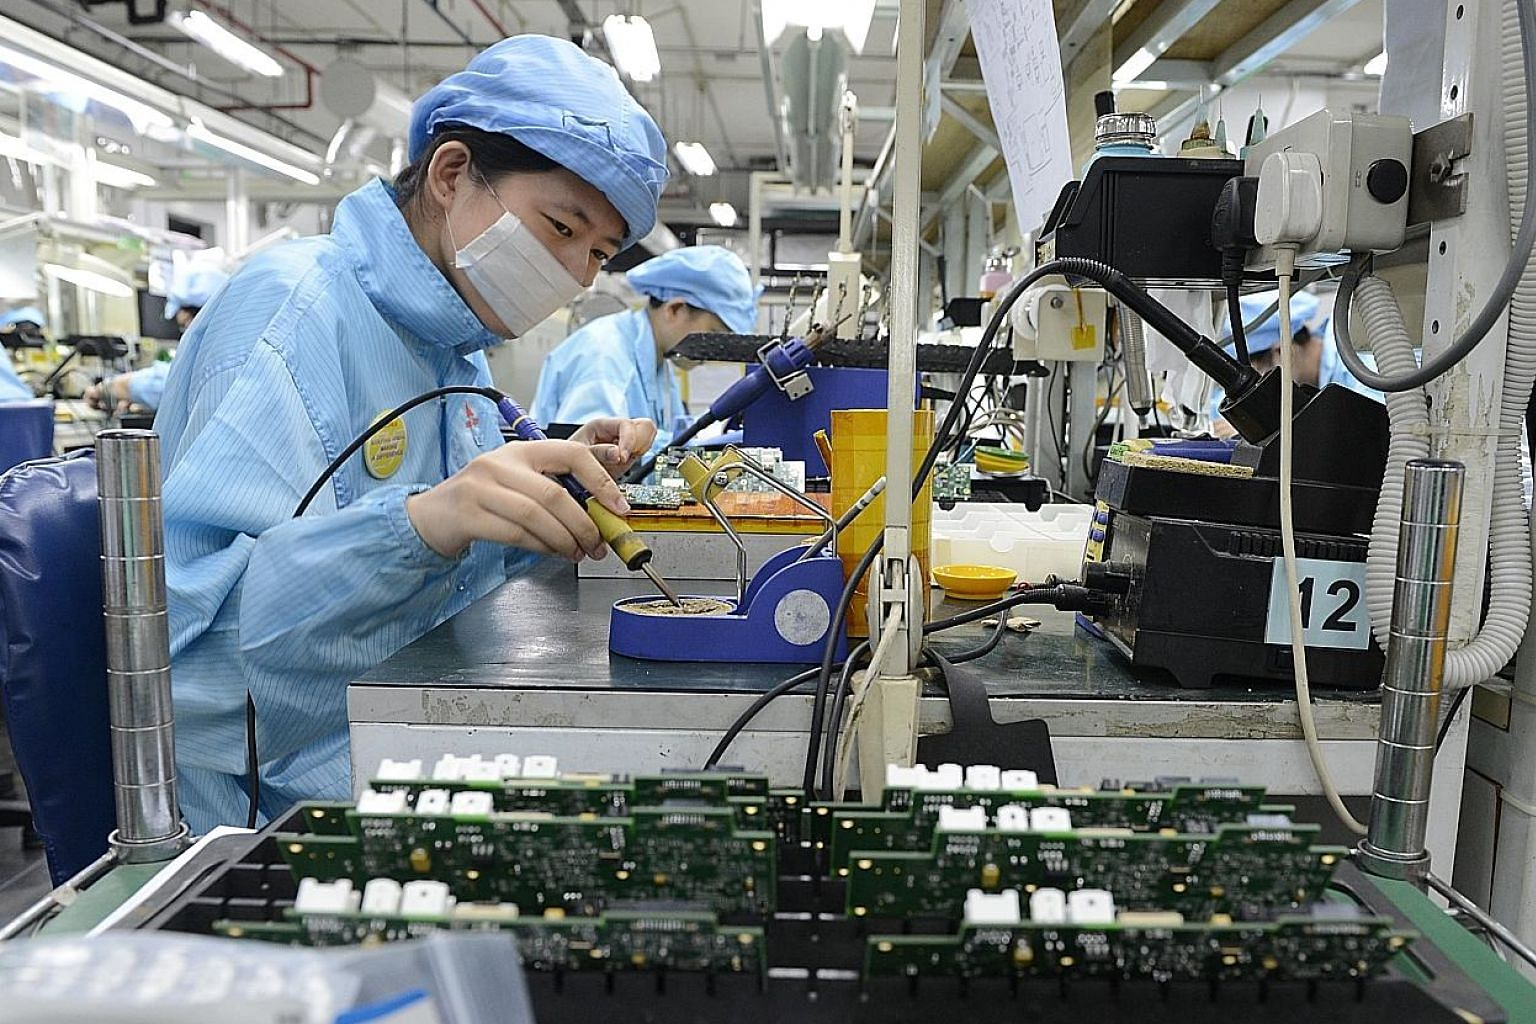 Electronics output last month swelled 39.8 per cent year on year, on robust growth in the semiconductors segment.